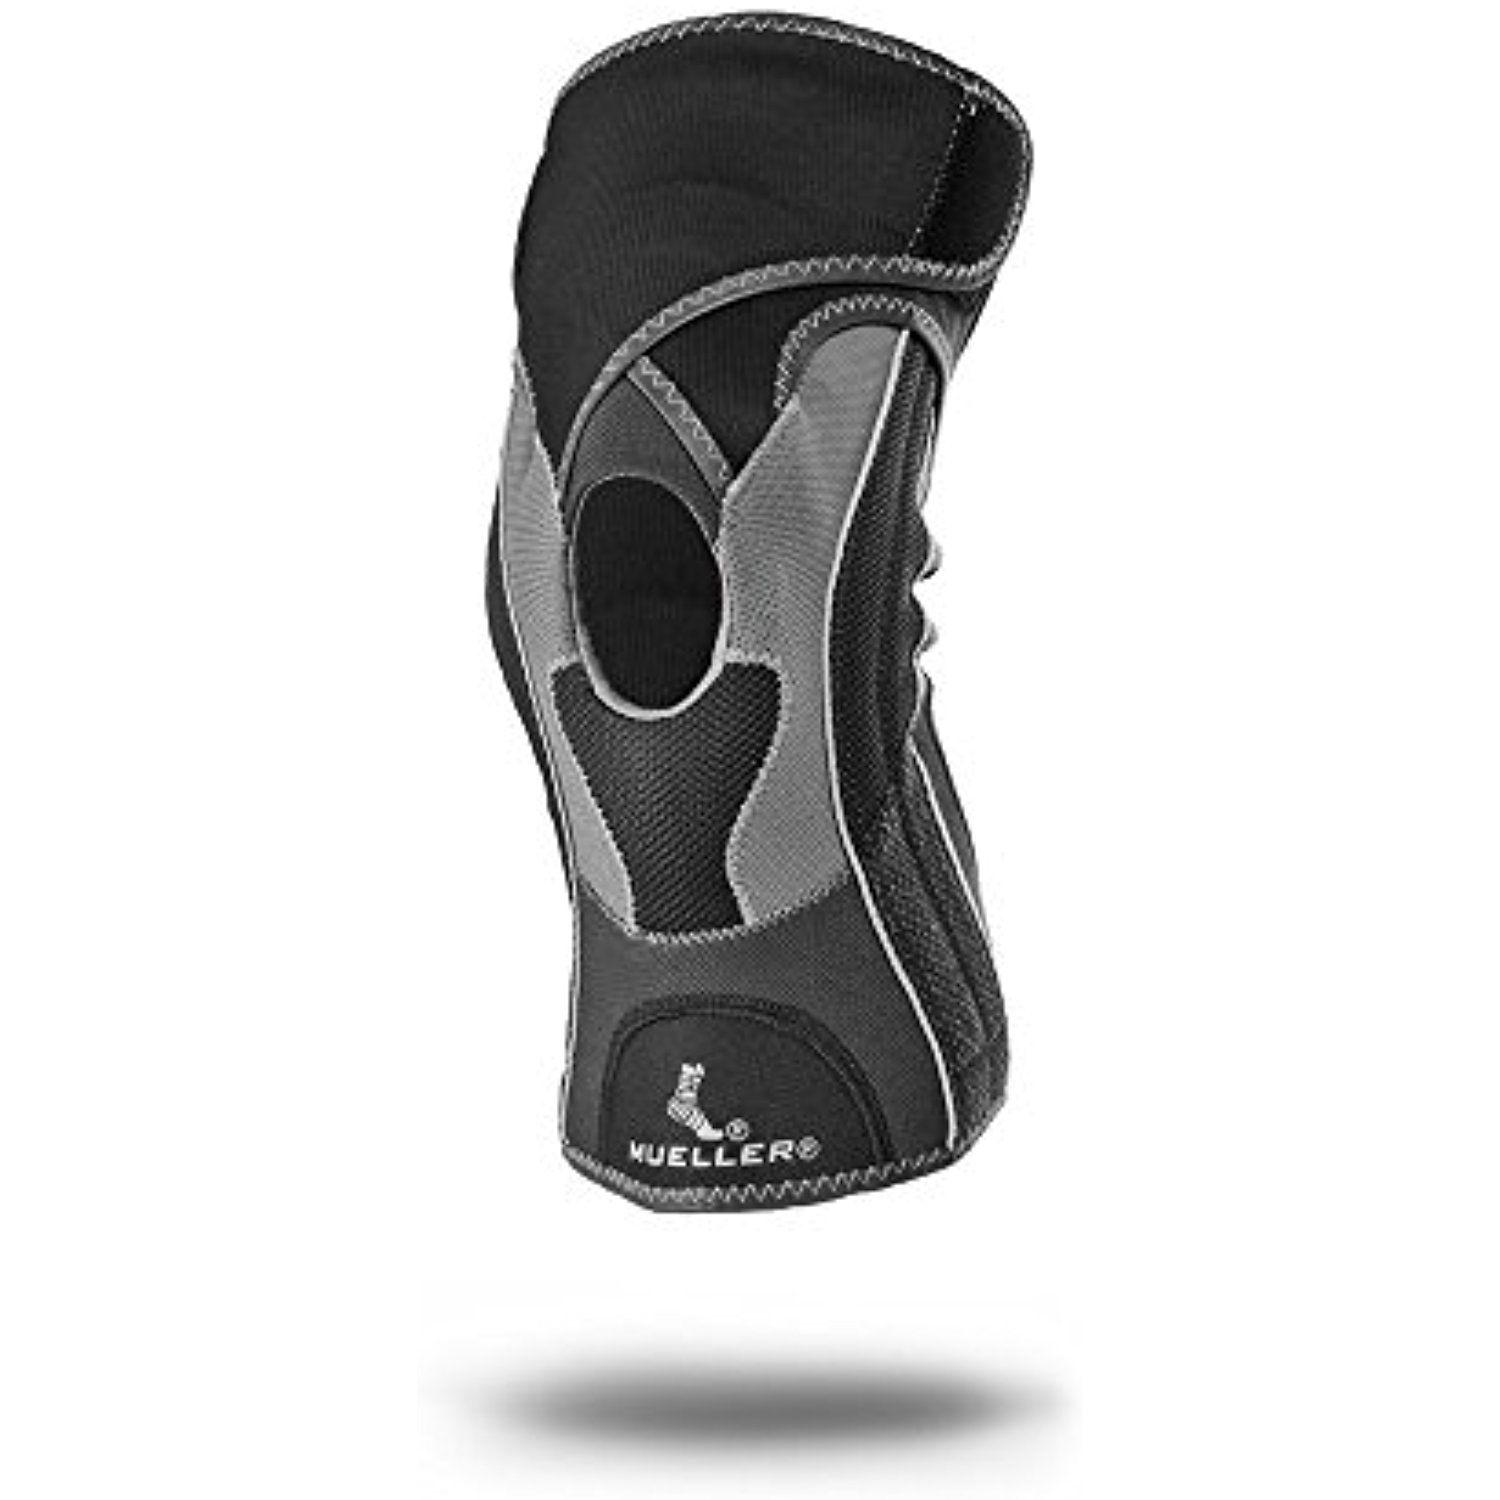 Mueller Hg80 Premium Knee Brace * Details can be found by